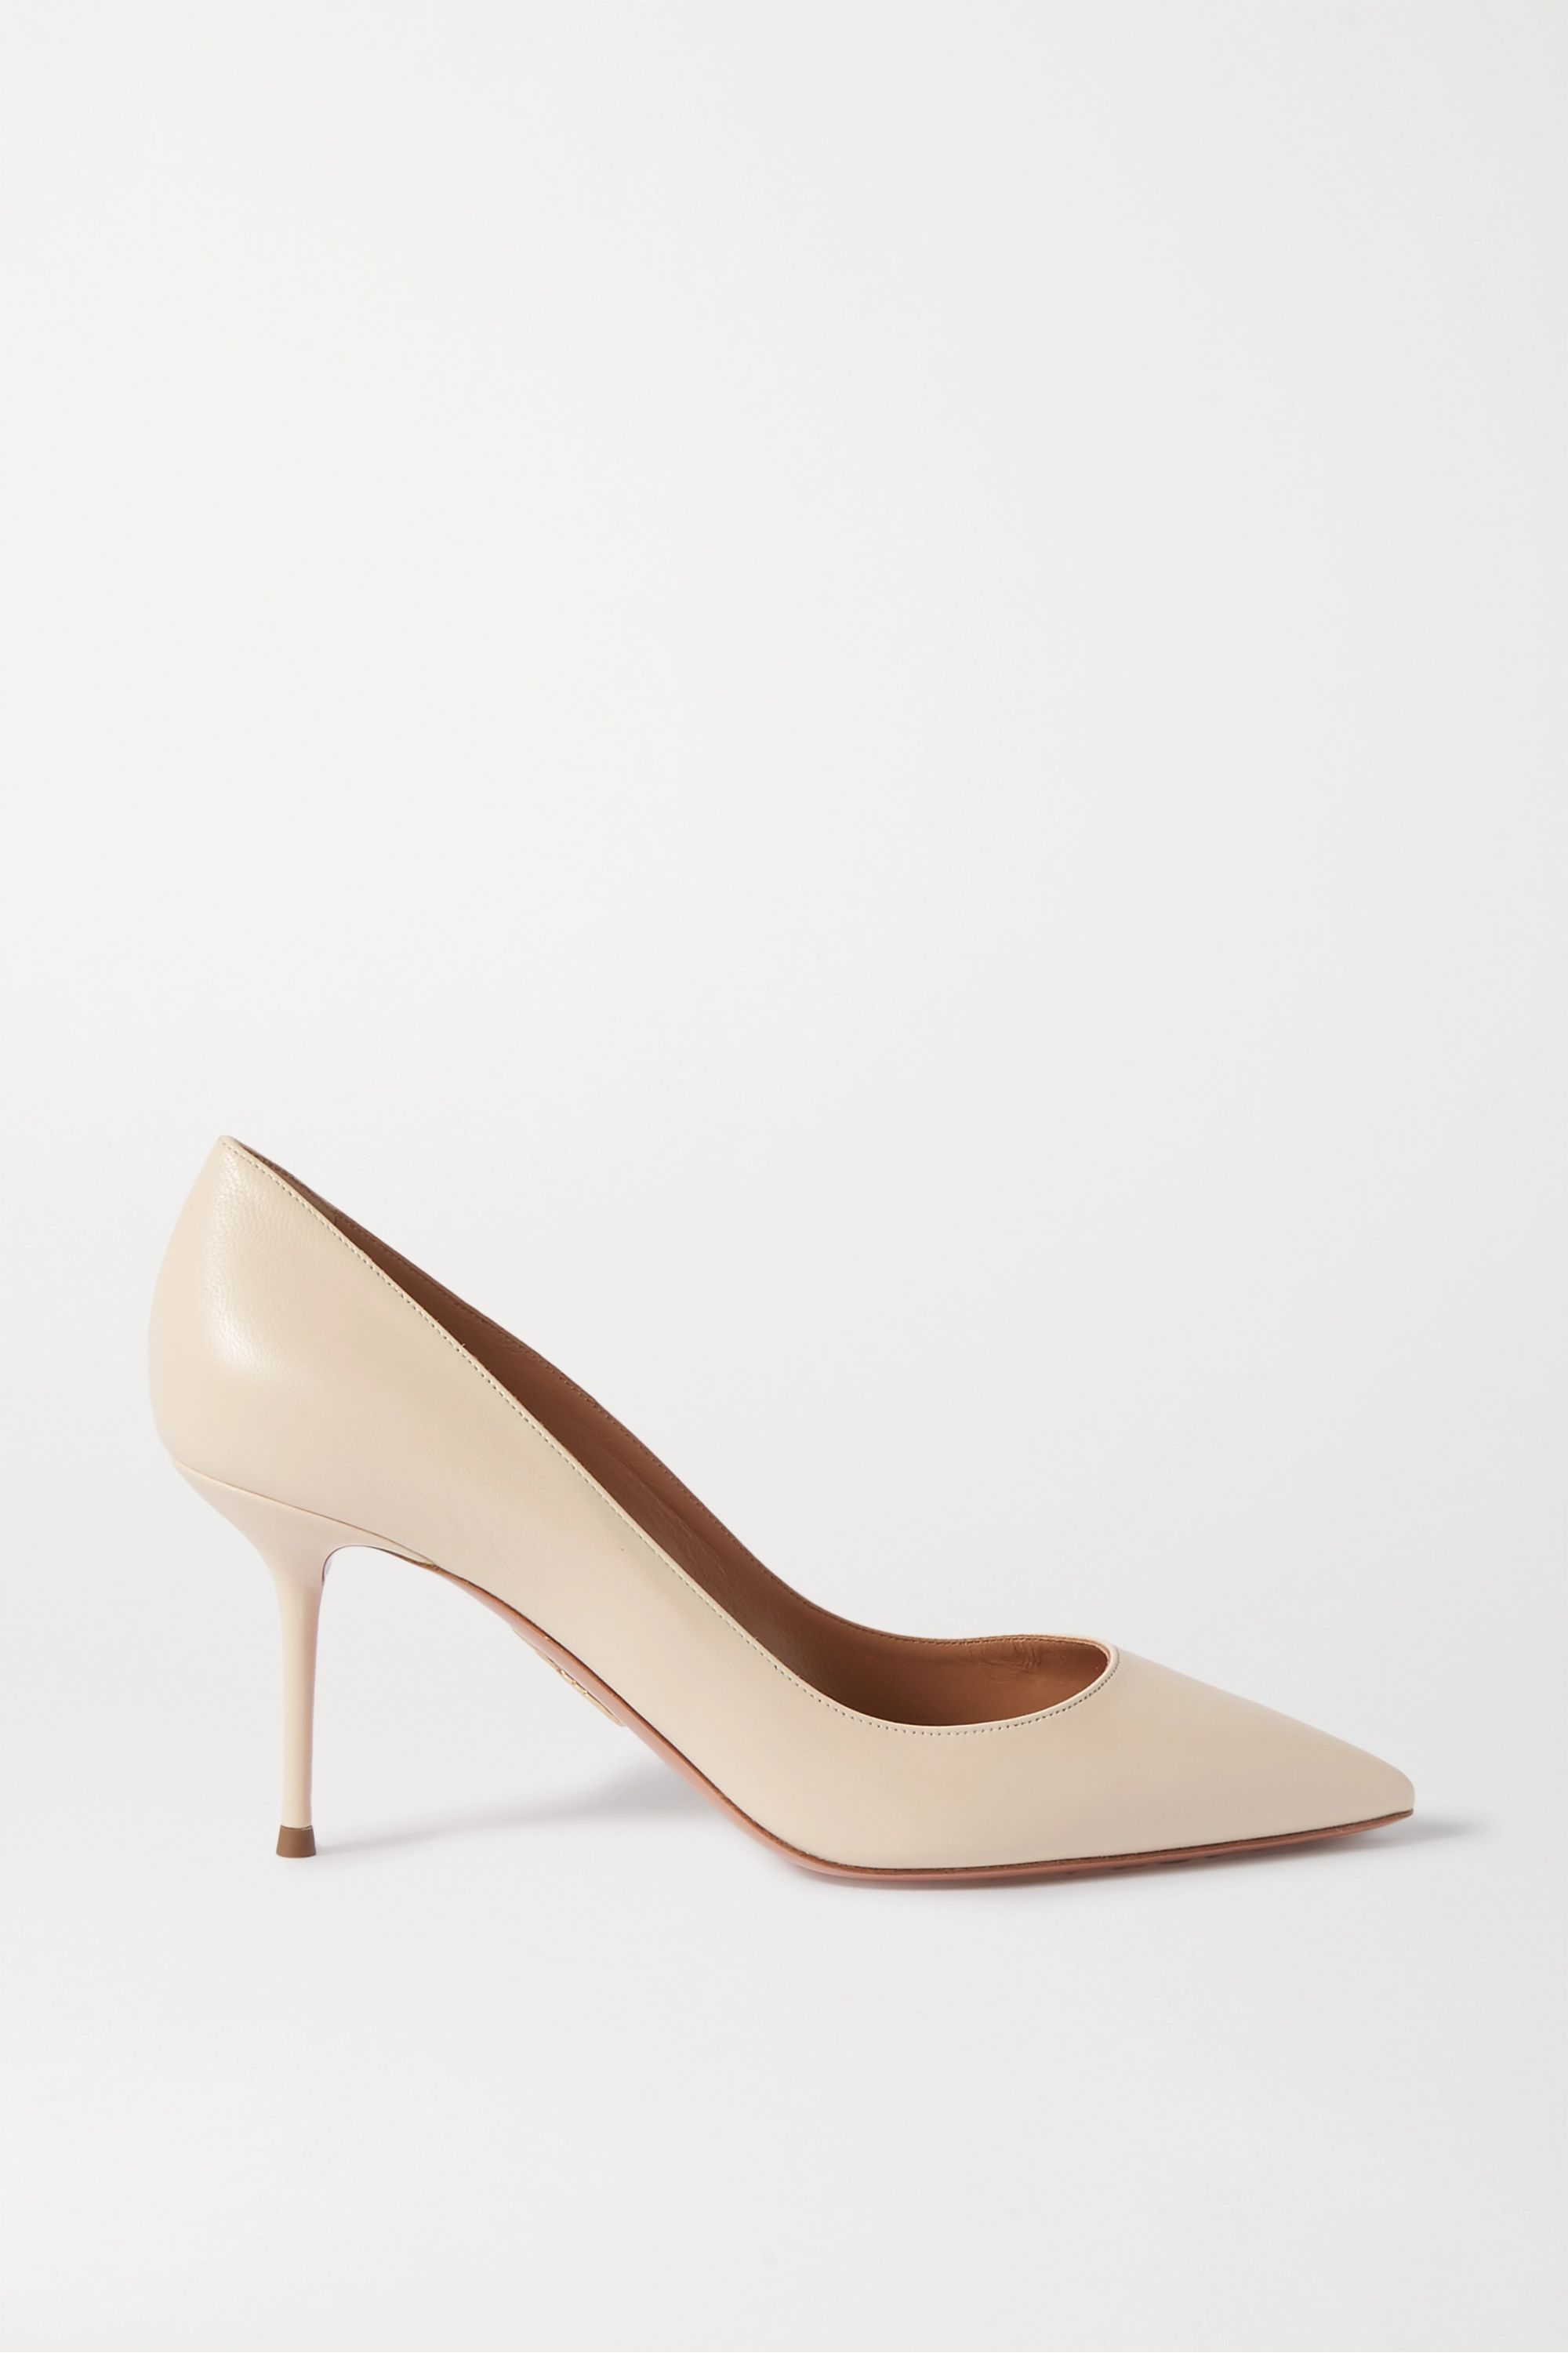 Aquazzura Purist 75 leather pumps